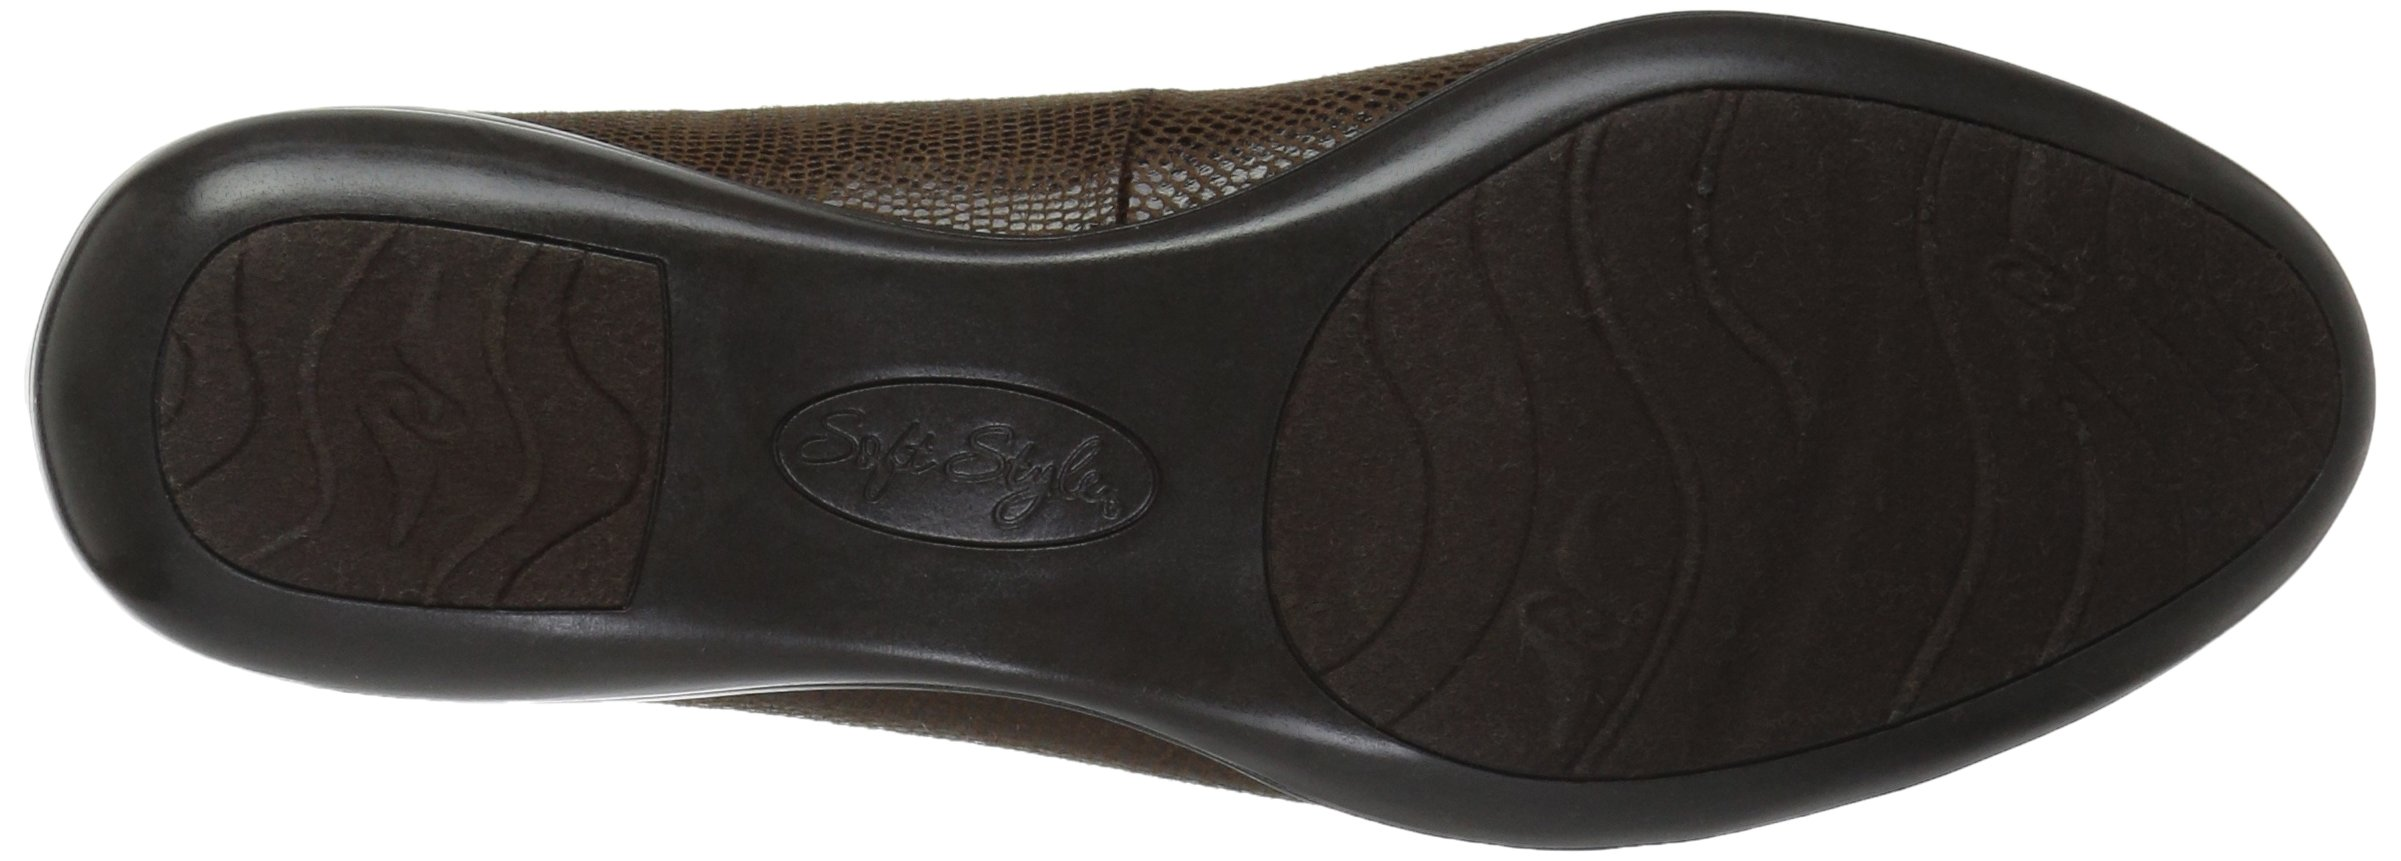 Soft Style by Hush Puppies Women's Daly Penny Loafer, Dark Brown Lizard/Patent, 8.5 W US by Soft Style (Image #3)